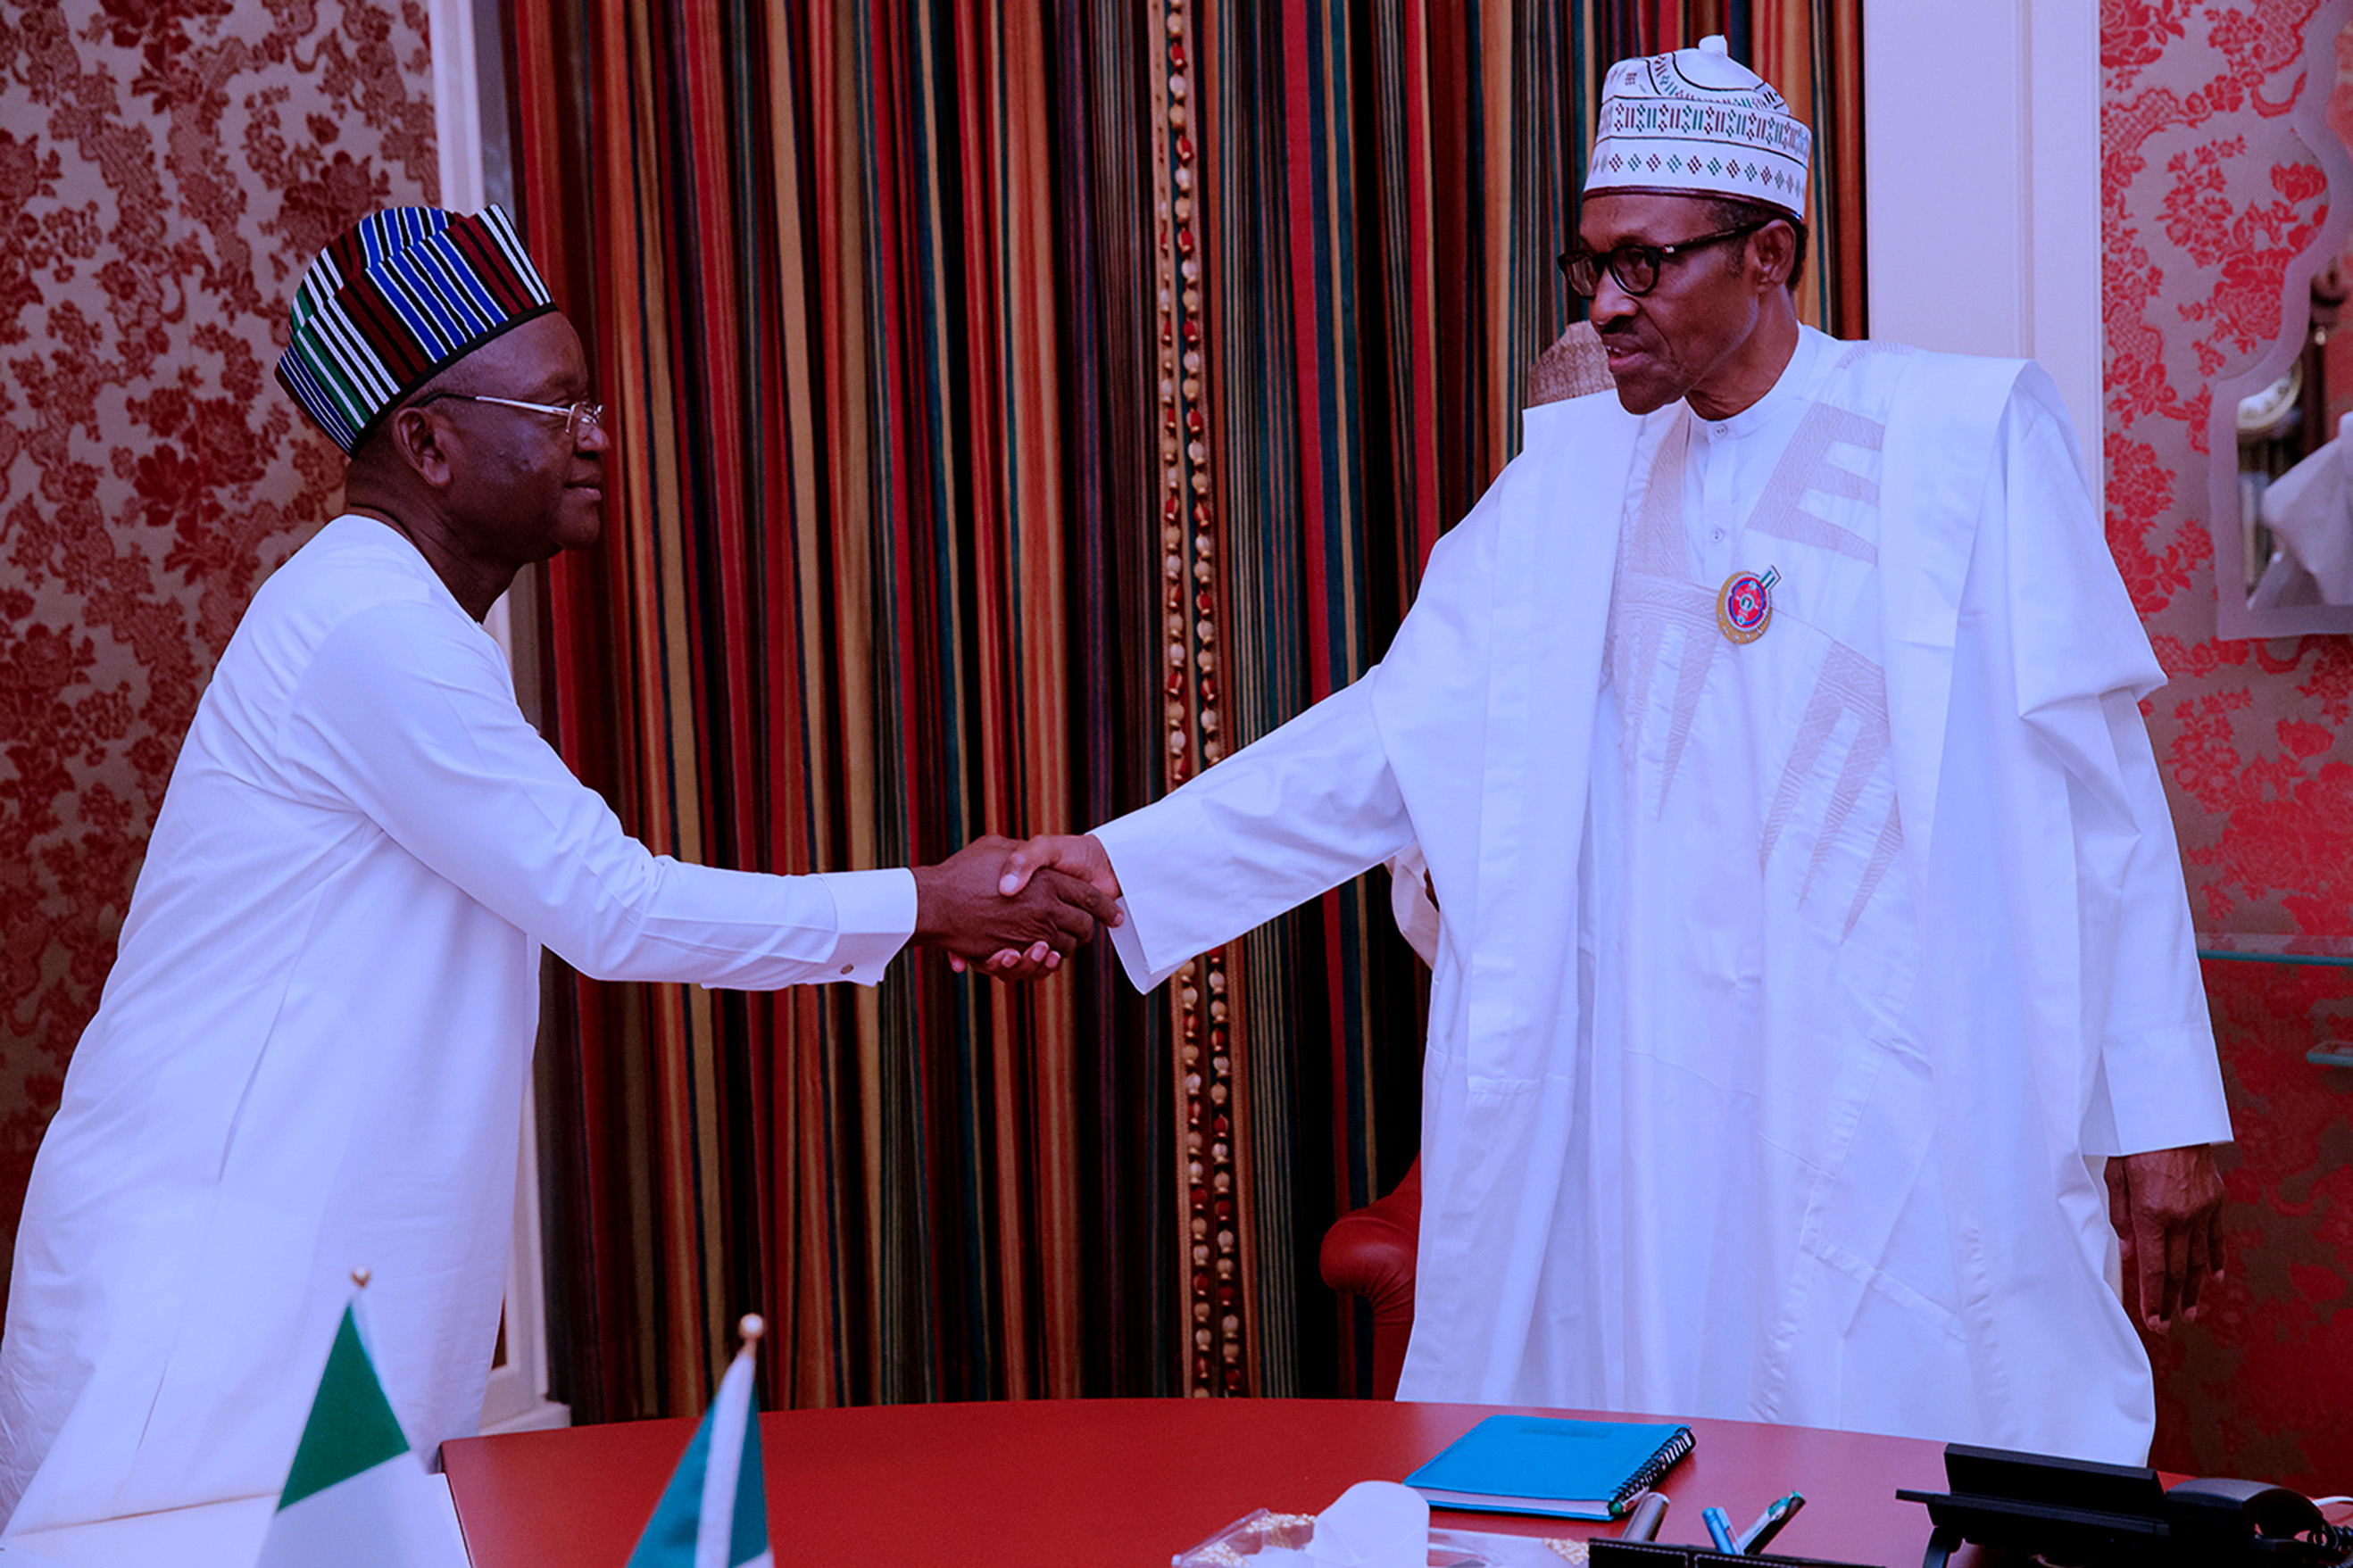 PRESIDENT BUHARI RECEIVES BENUE GOV 1 . President Muhammadu Buhari receives The Governor of Benue, Mr samuel Ortom at the State House in Abuja. PHOTO; SUNDAY AGHAEZE. JAN 9 2018